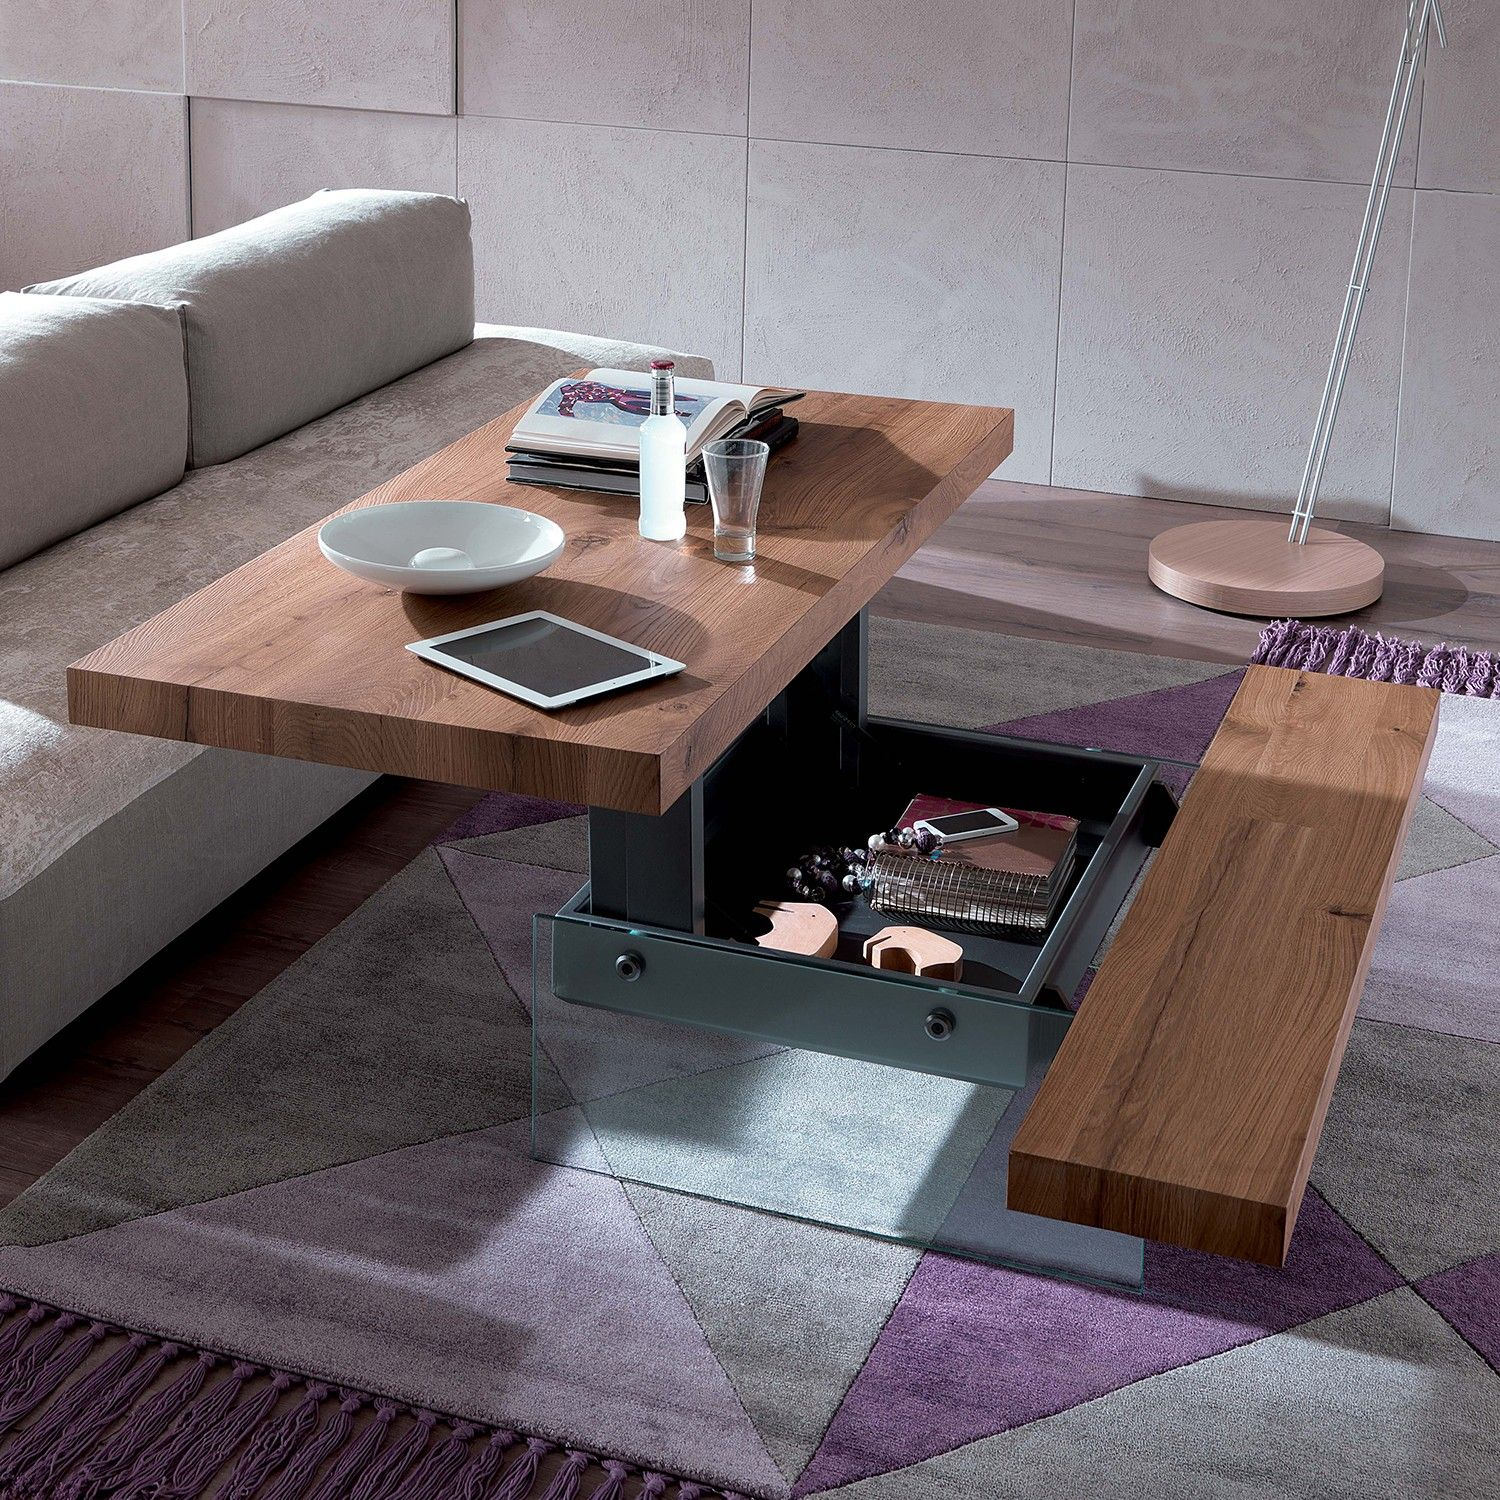 Markus transformable coffee table by ozzio italia with seating and storage compartment included